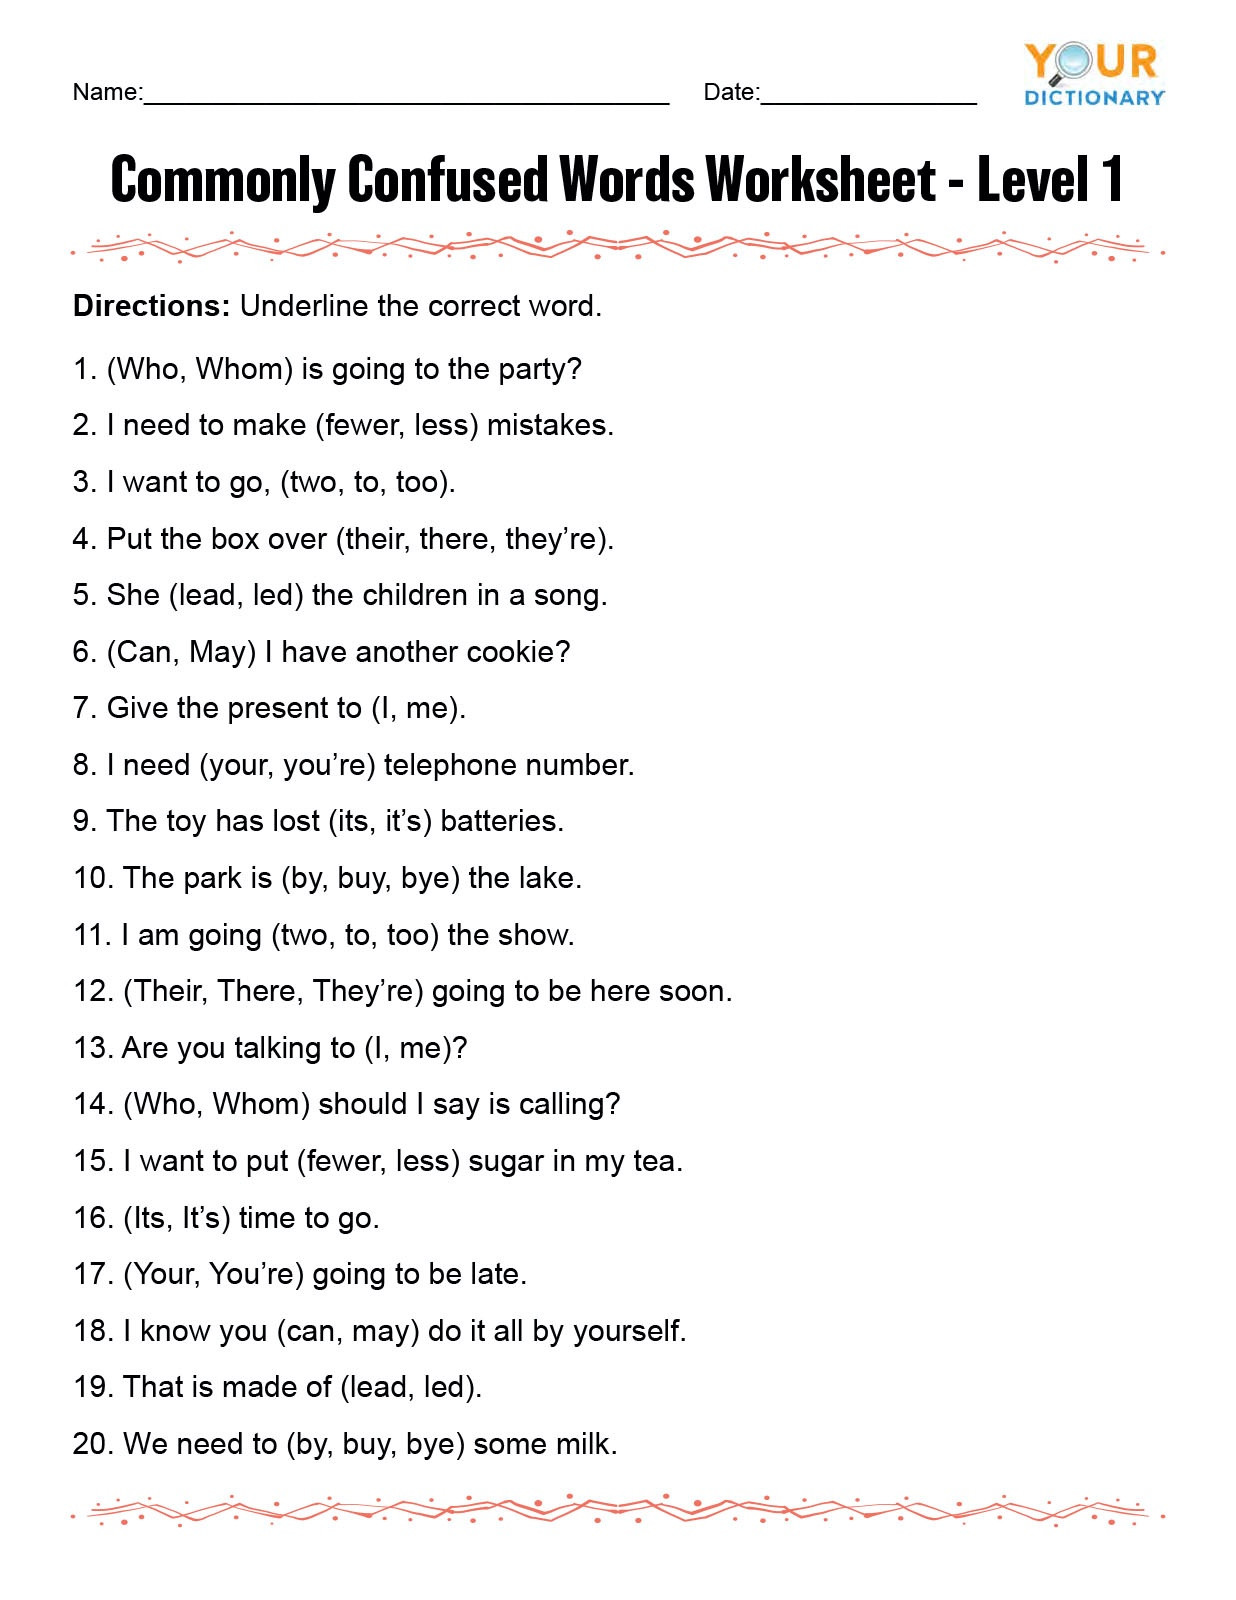 Homophone Worksheets Middle School Monly Confused Words Worksheet